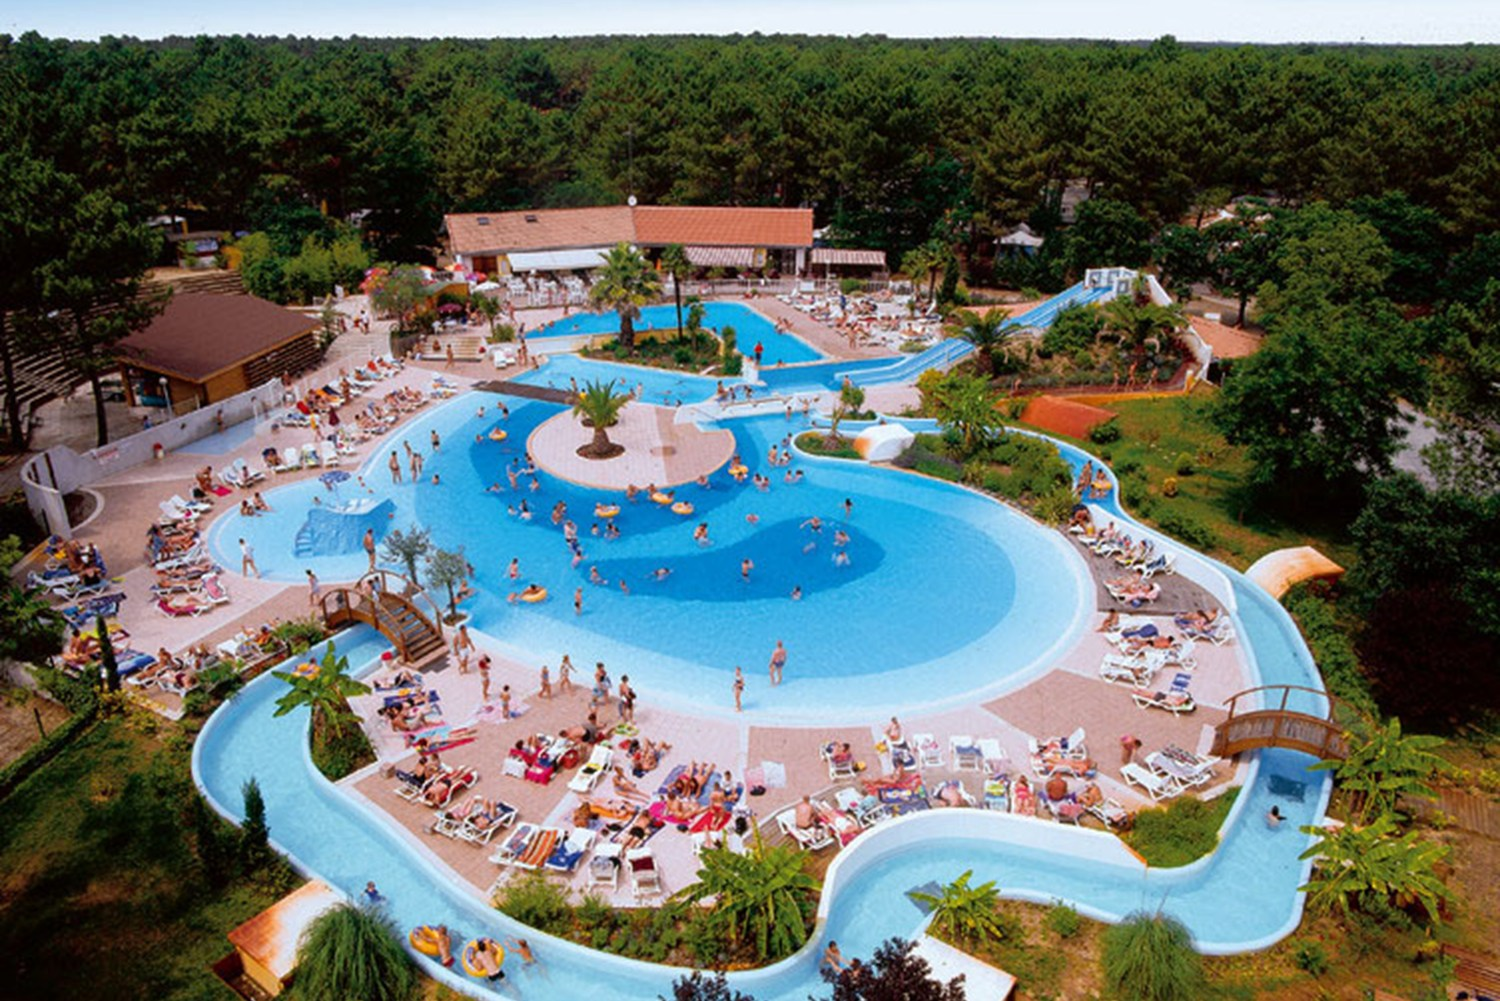 Camping landes parc aquatique 31 campings d couvrir for Camping massif central avec piscine